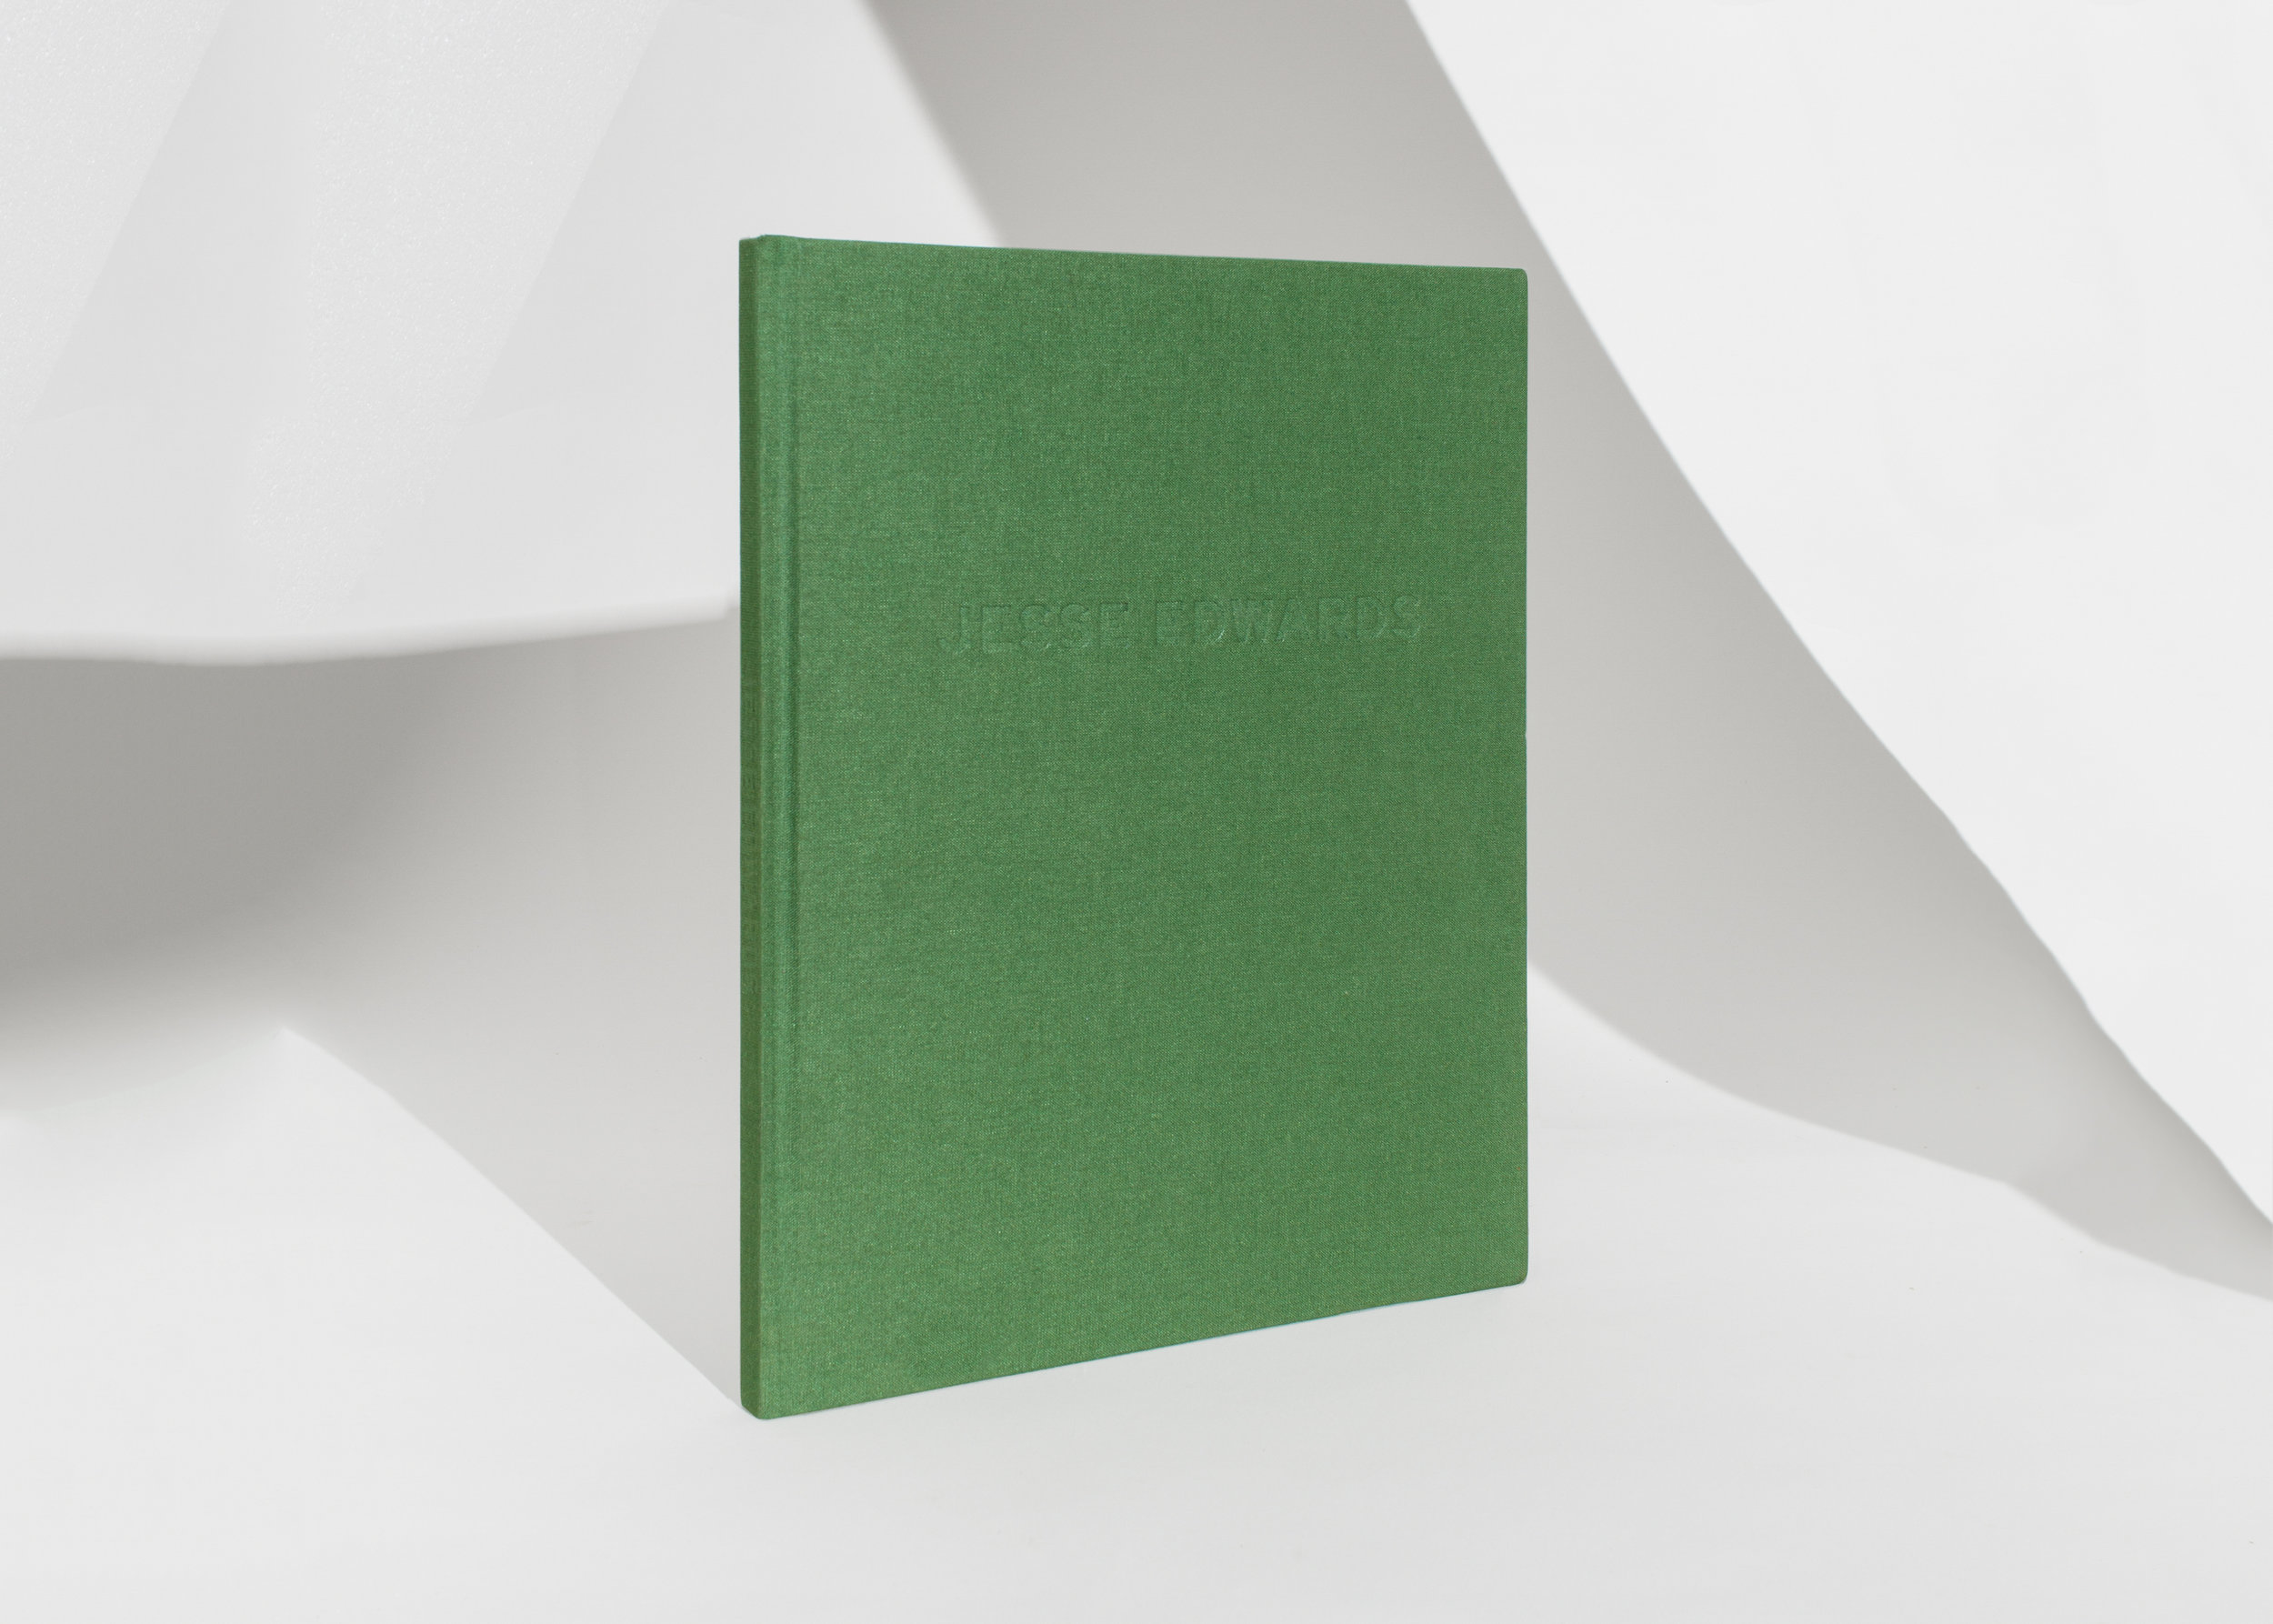 Jesse Edwards Monograph, by Jesse Edwards Published by Vito Schnabel Gallery 78 pg (Colour, Digital) 11 in x 9 in - 29 cm x 23 cm Hardcover - Perfect binding Green linen cover, blind deboss